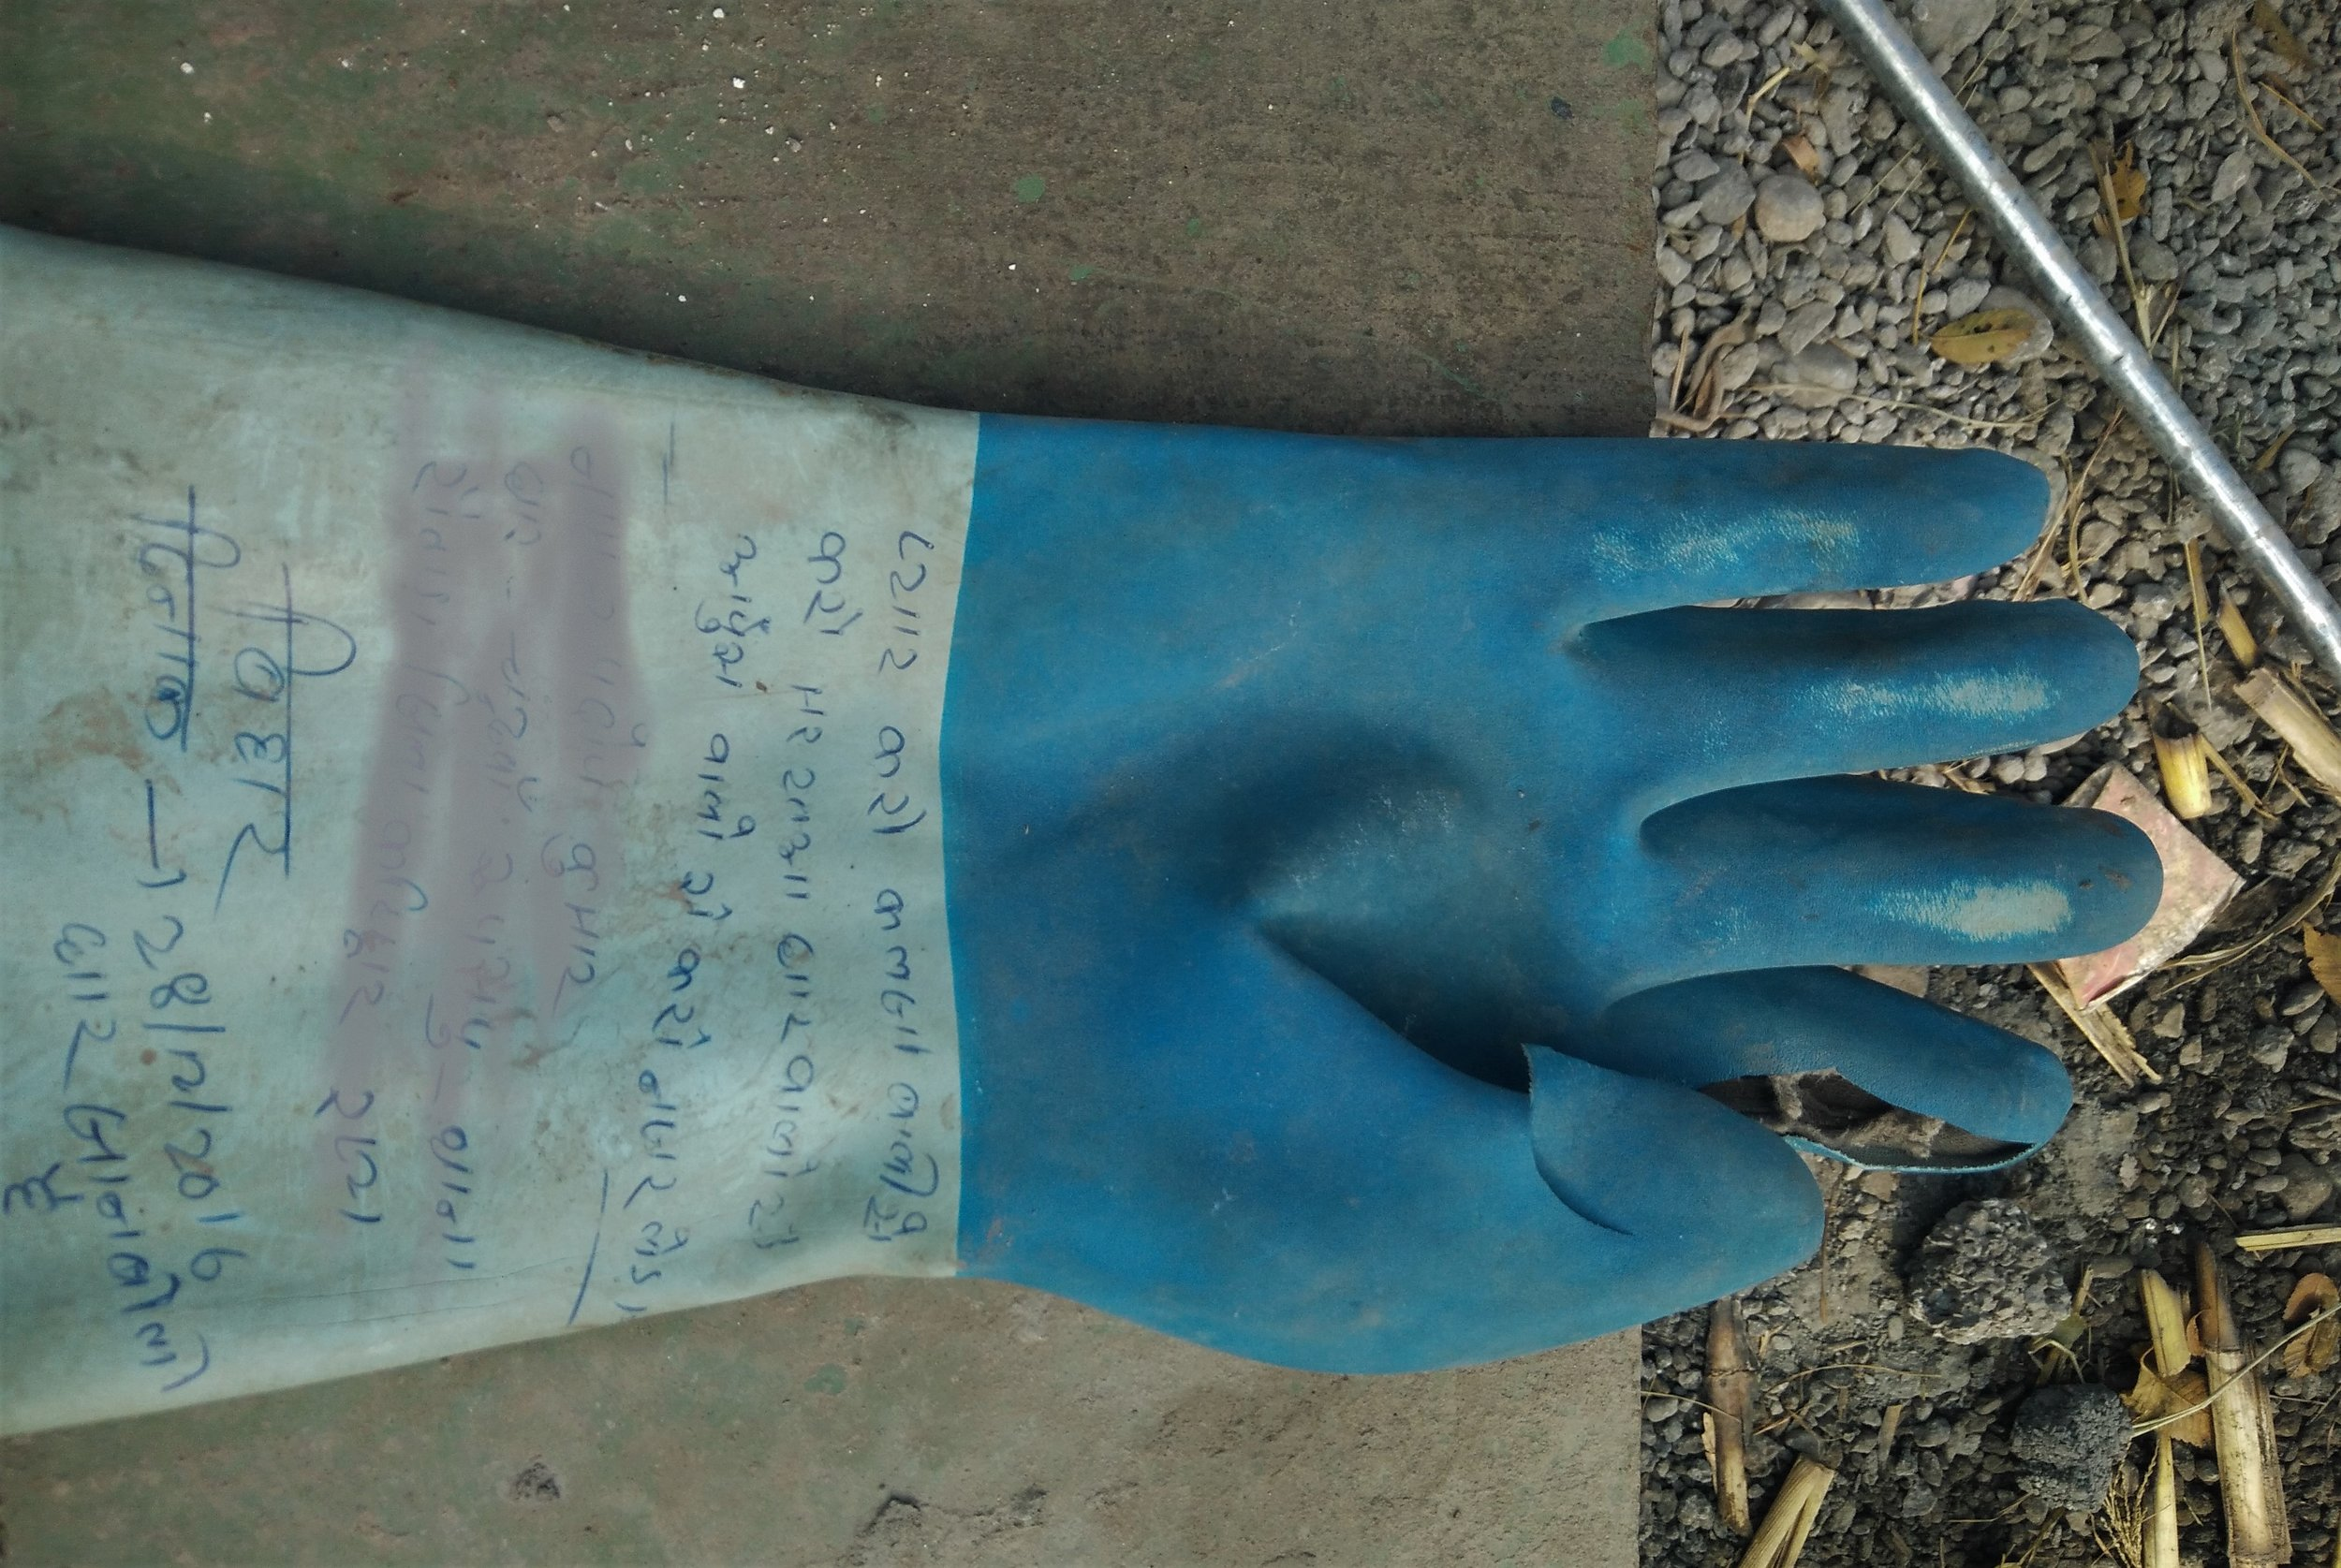 A migrant worker wrote a piece of poetry about women on his safety glove. Credit: Ankur Jayaswal